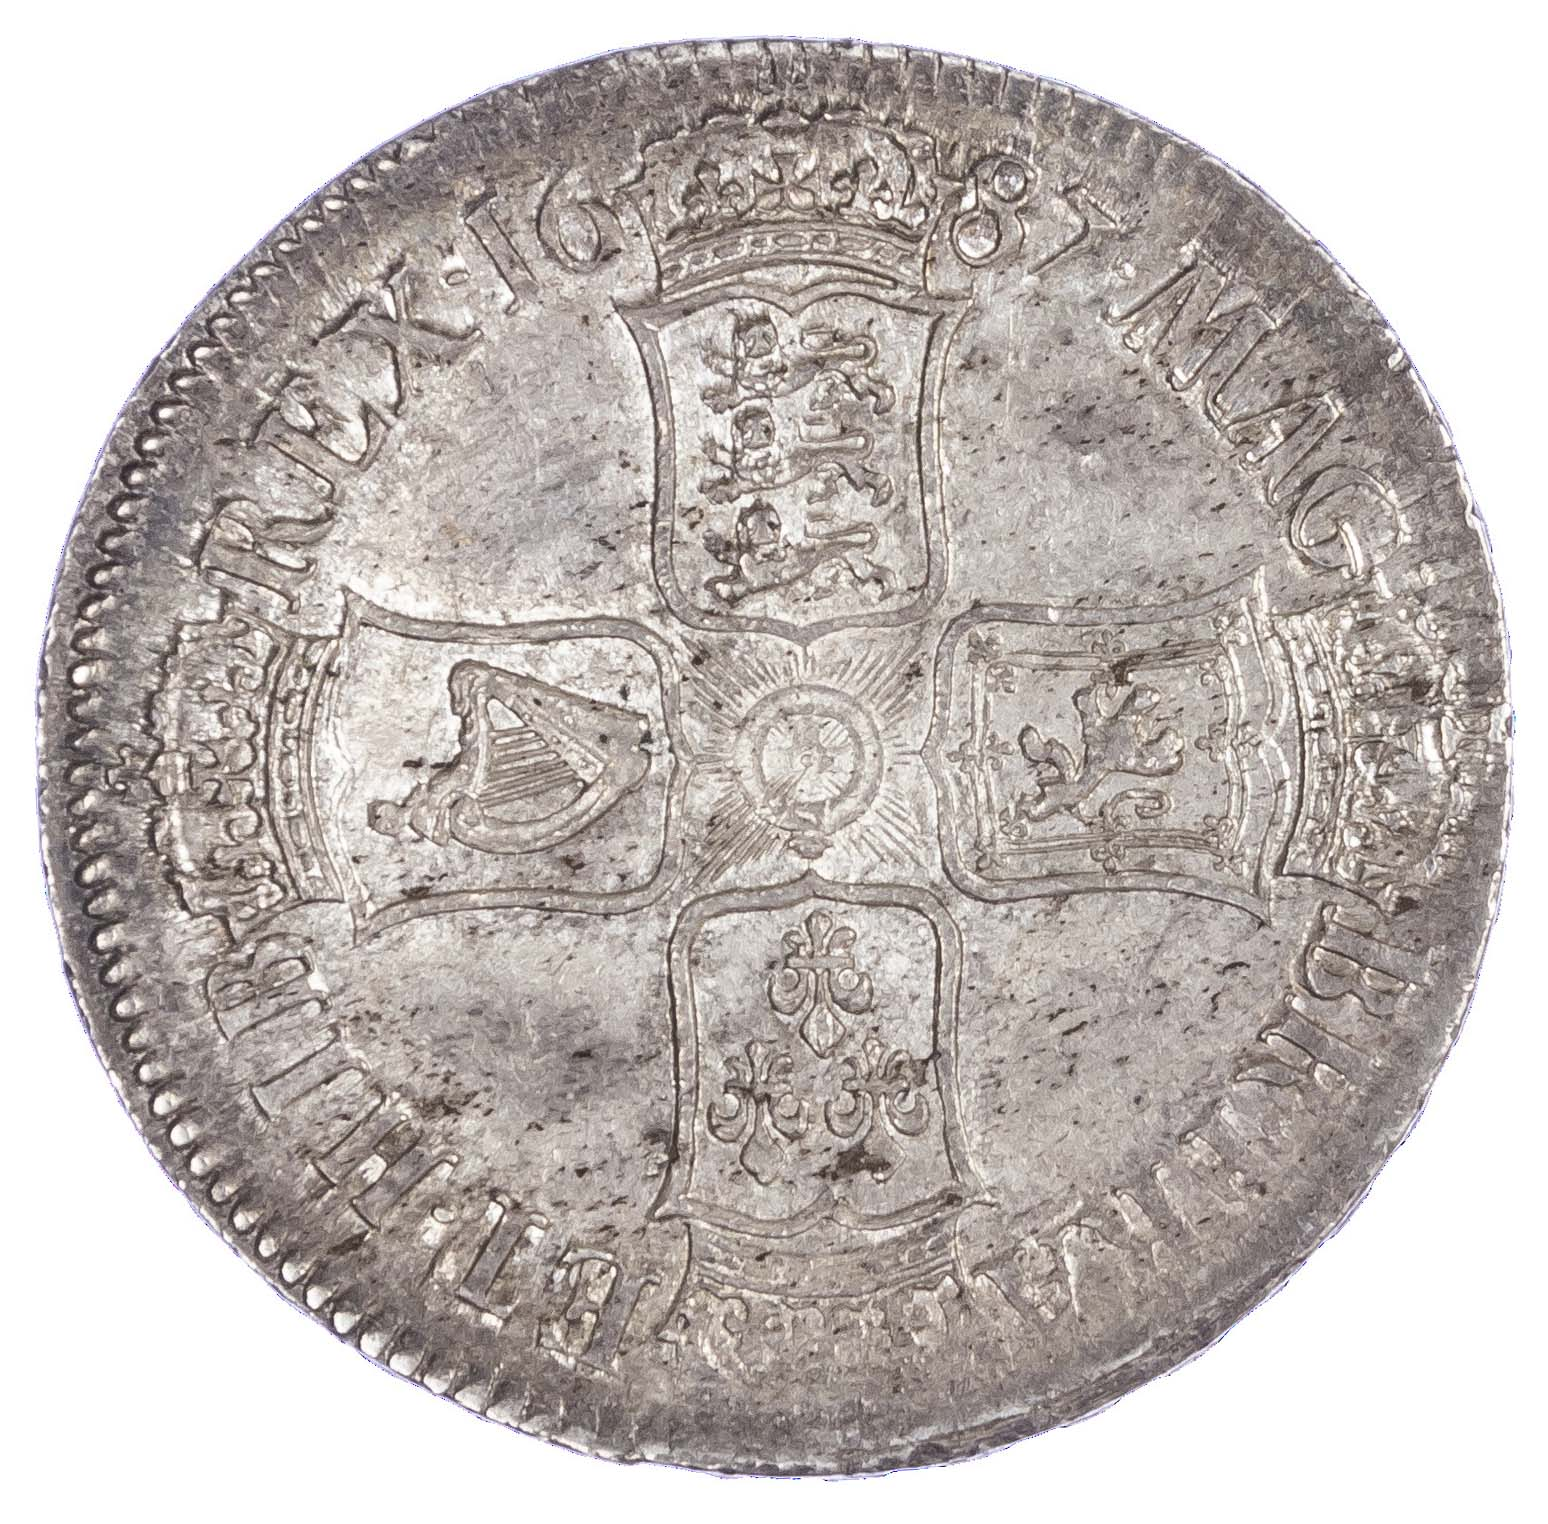 James II (1685-88), Crown, 1687, second bust, TERTIO. E over R in ET in edge (Rare)